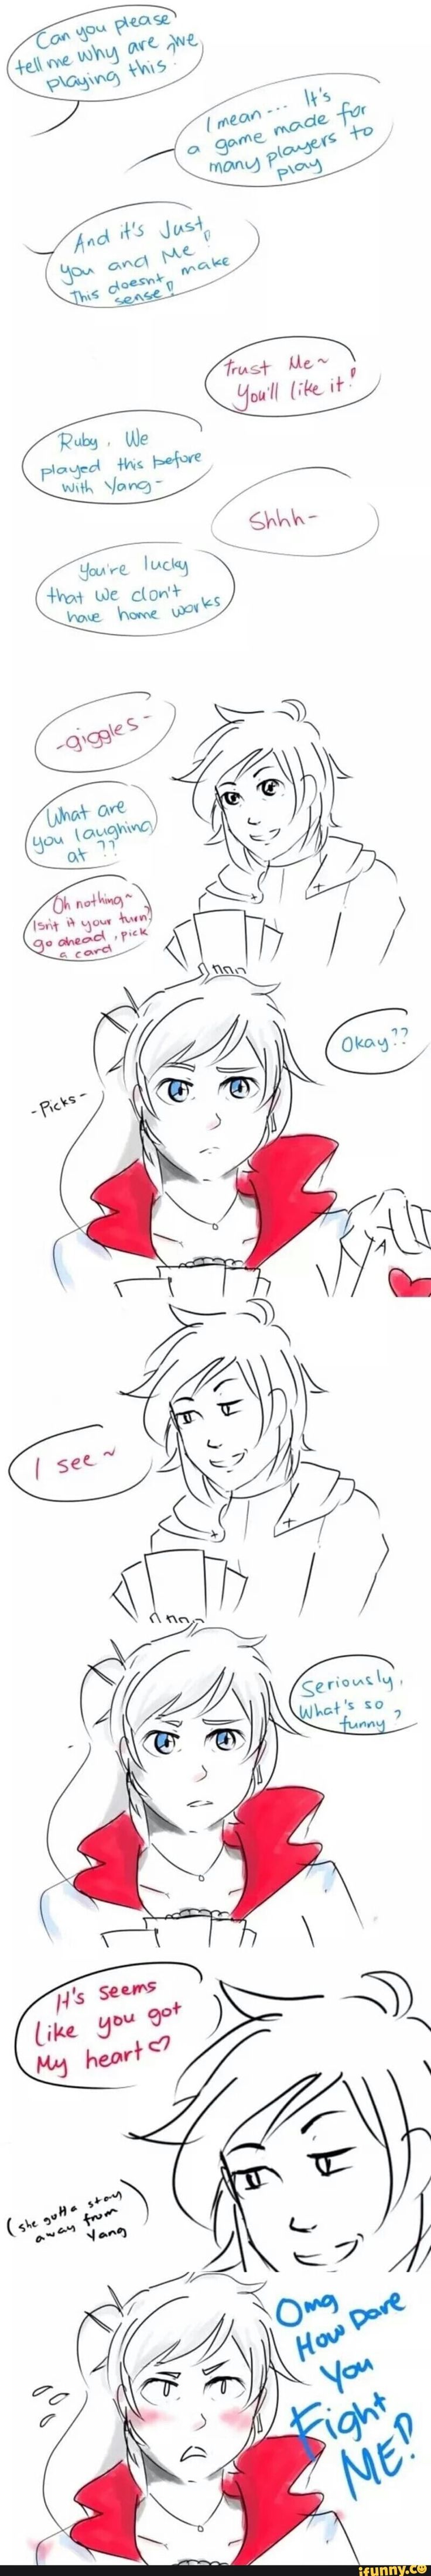 Very funny :) Rwby, White Rose Ruby Rose x Weiss Schnee